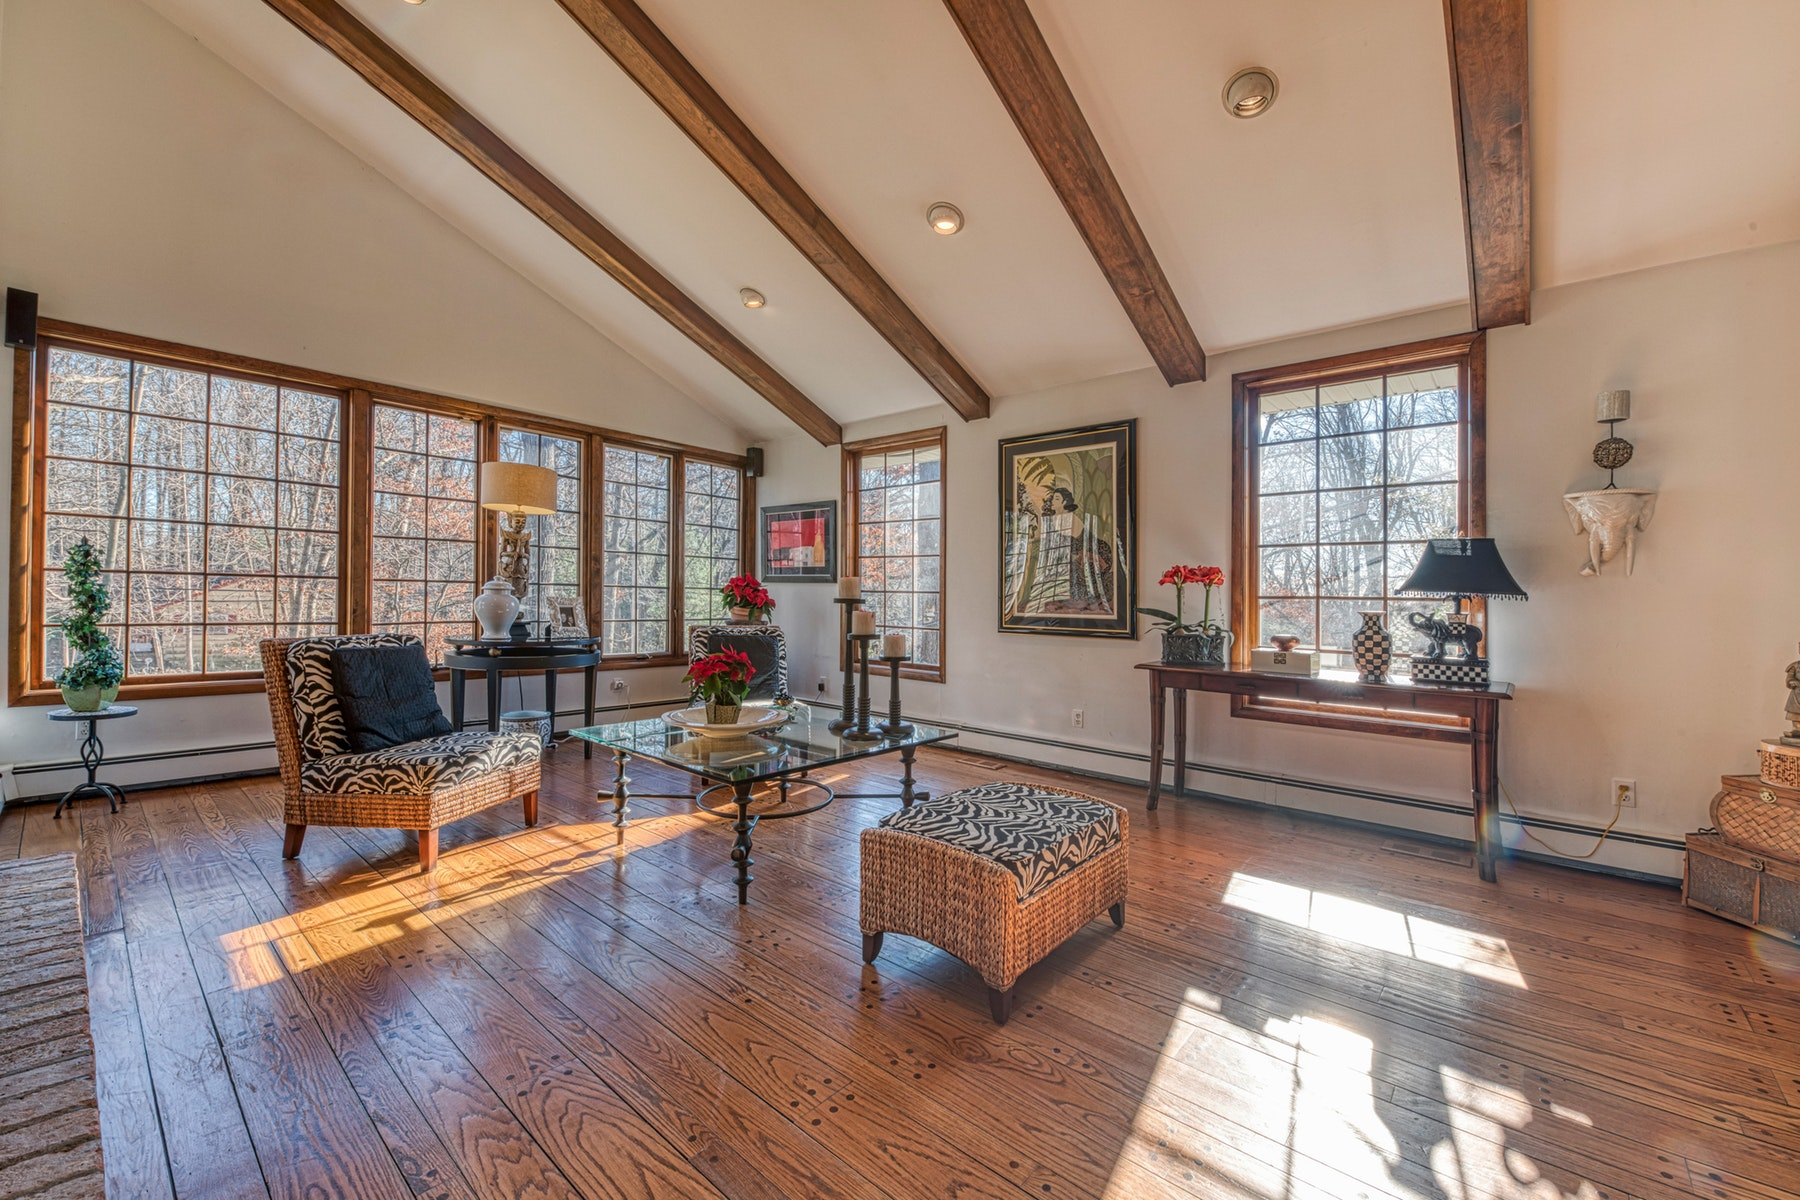 Single Family Homes for Sale at Decorator's Own ! 7 Sleepy Hollow Rd Upper Saddle River, New Jersey 07458 United States